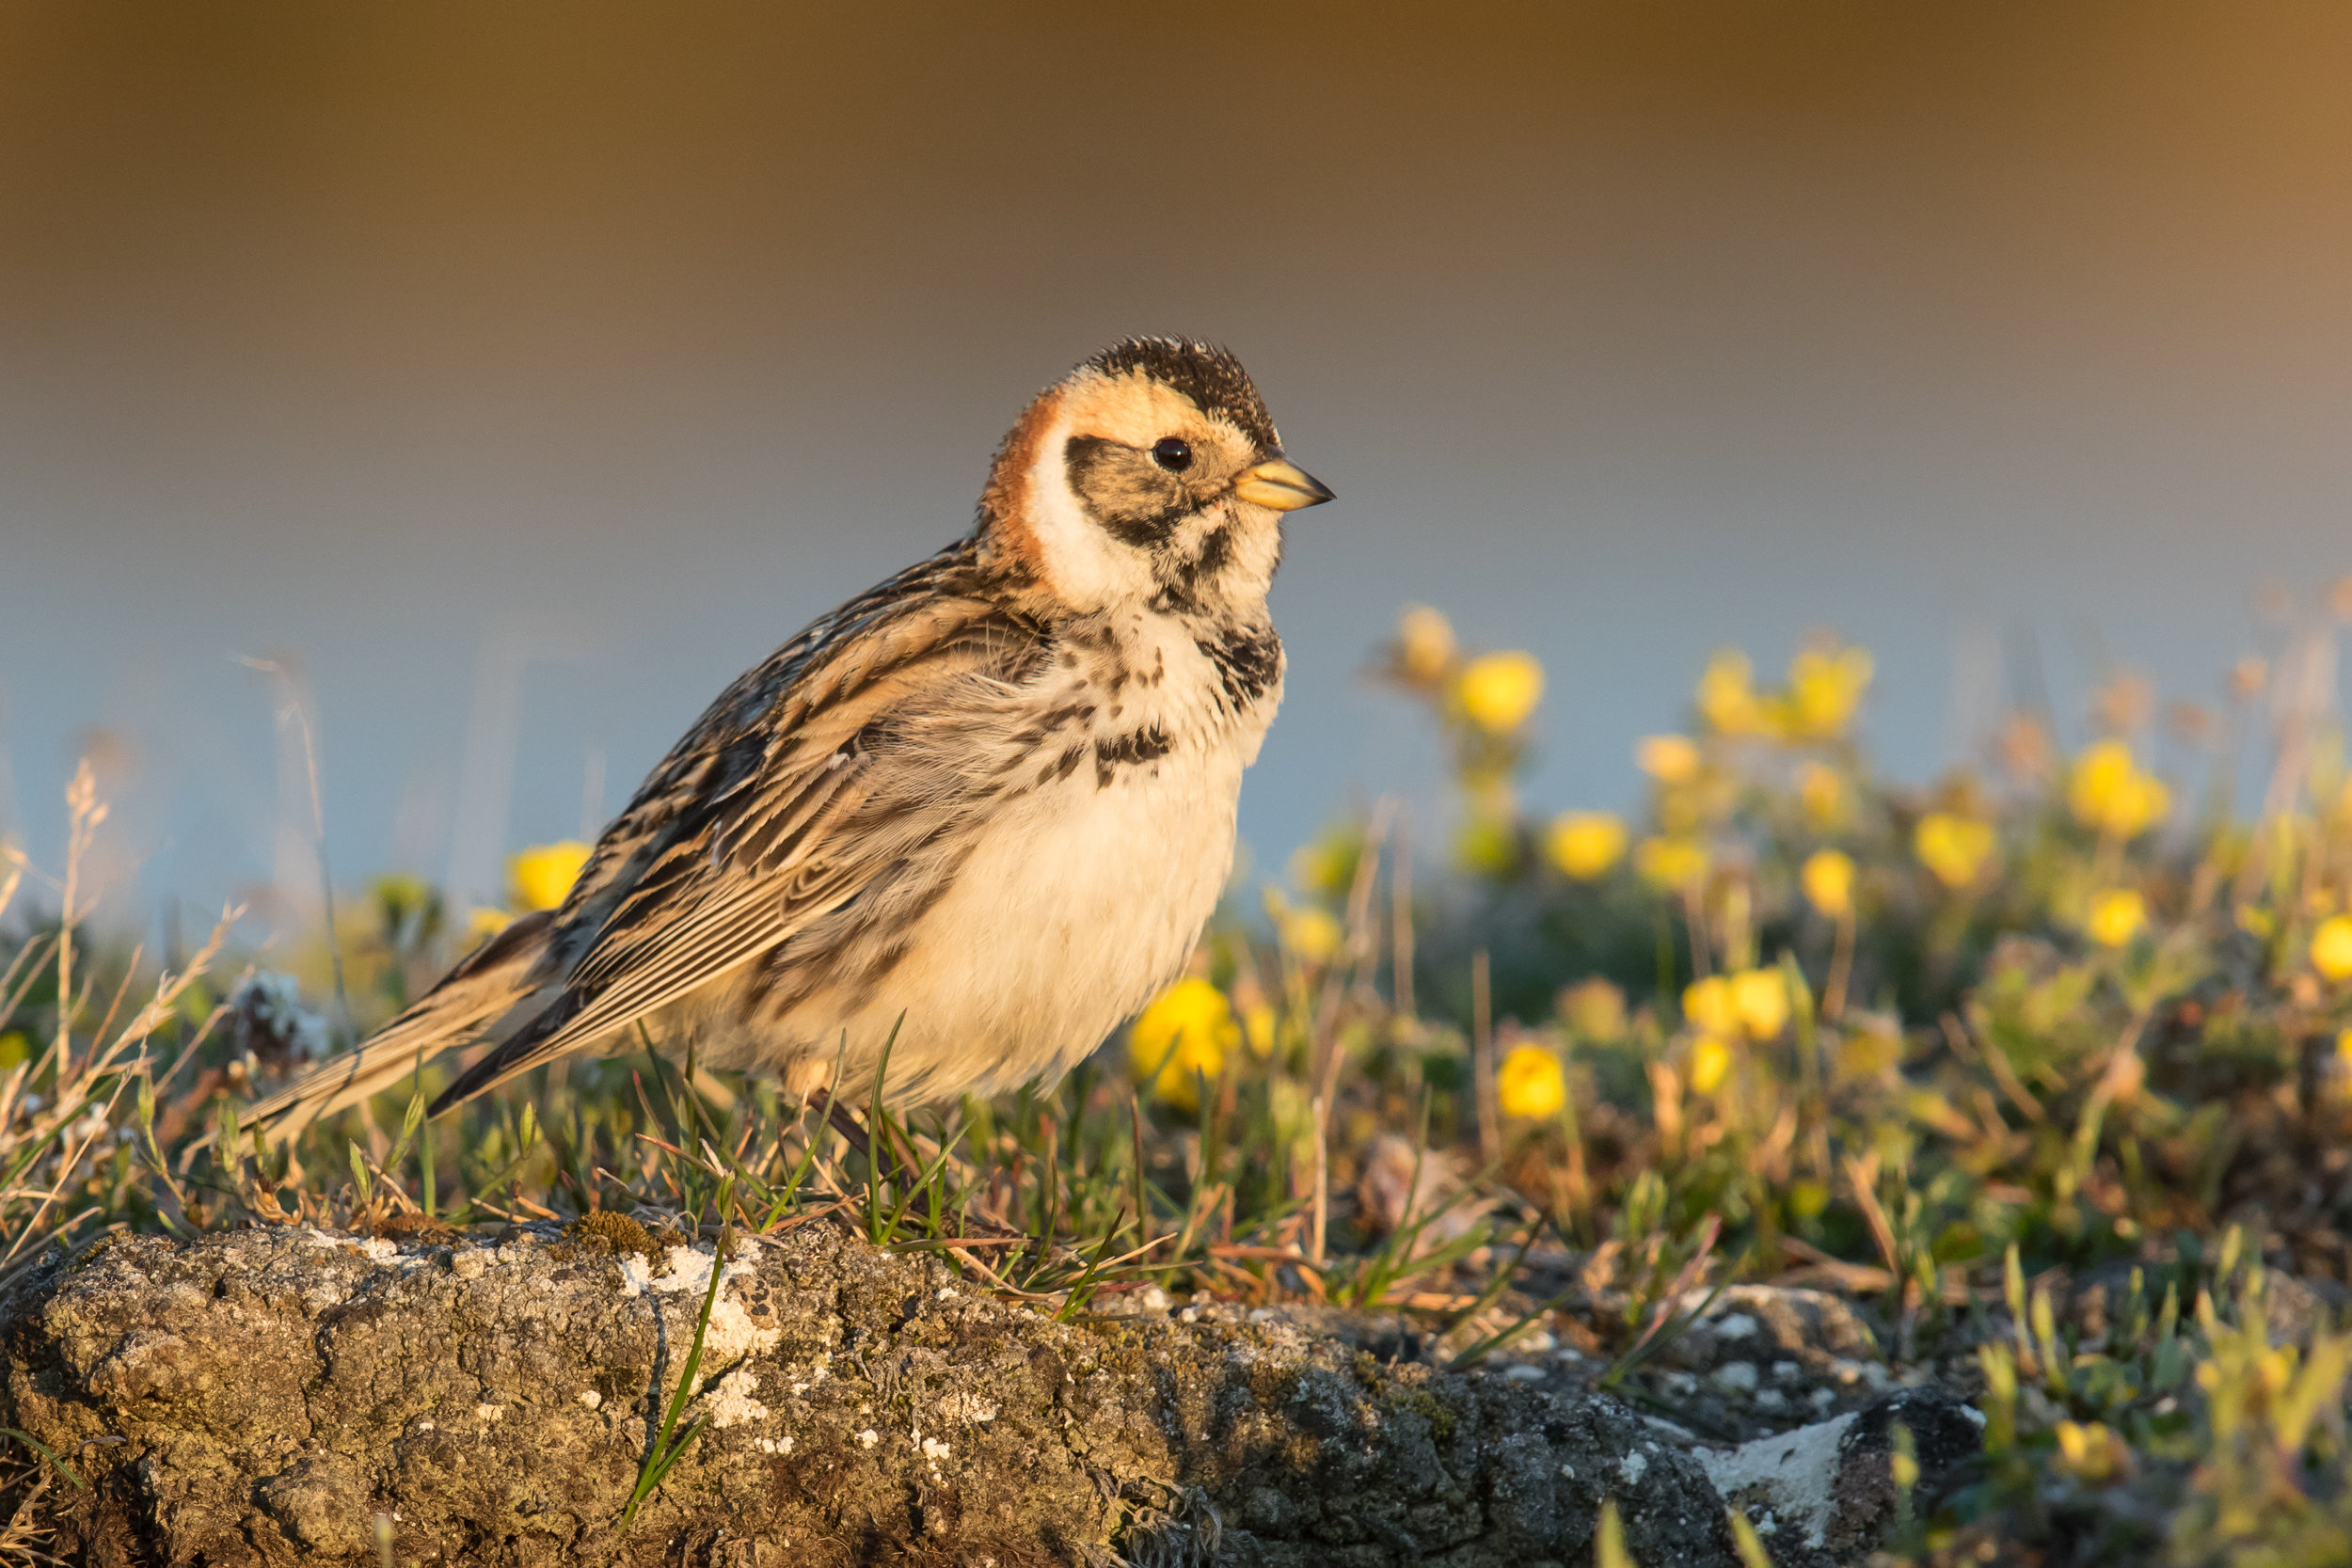 Lapland Longspur, Photography by Mick Thompson